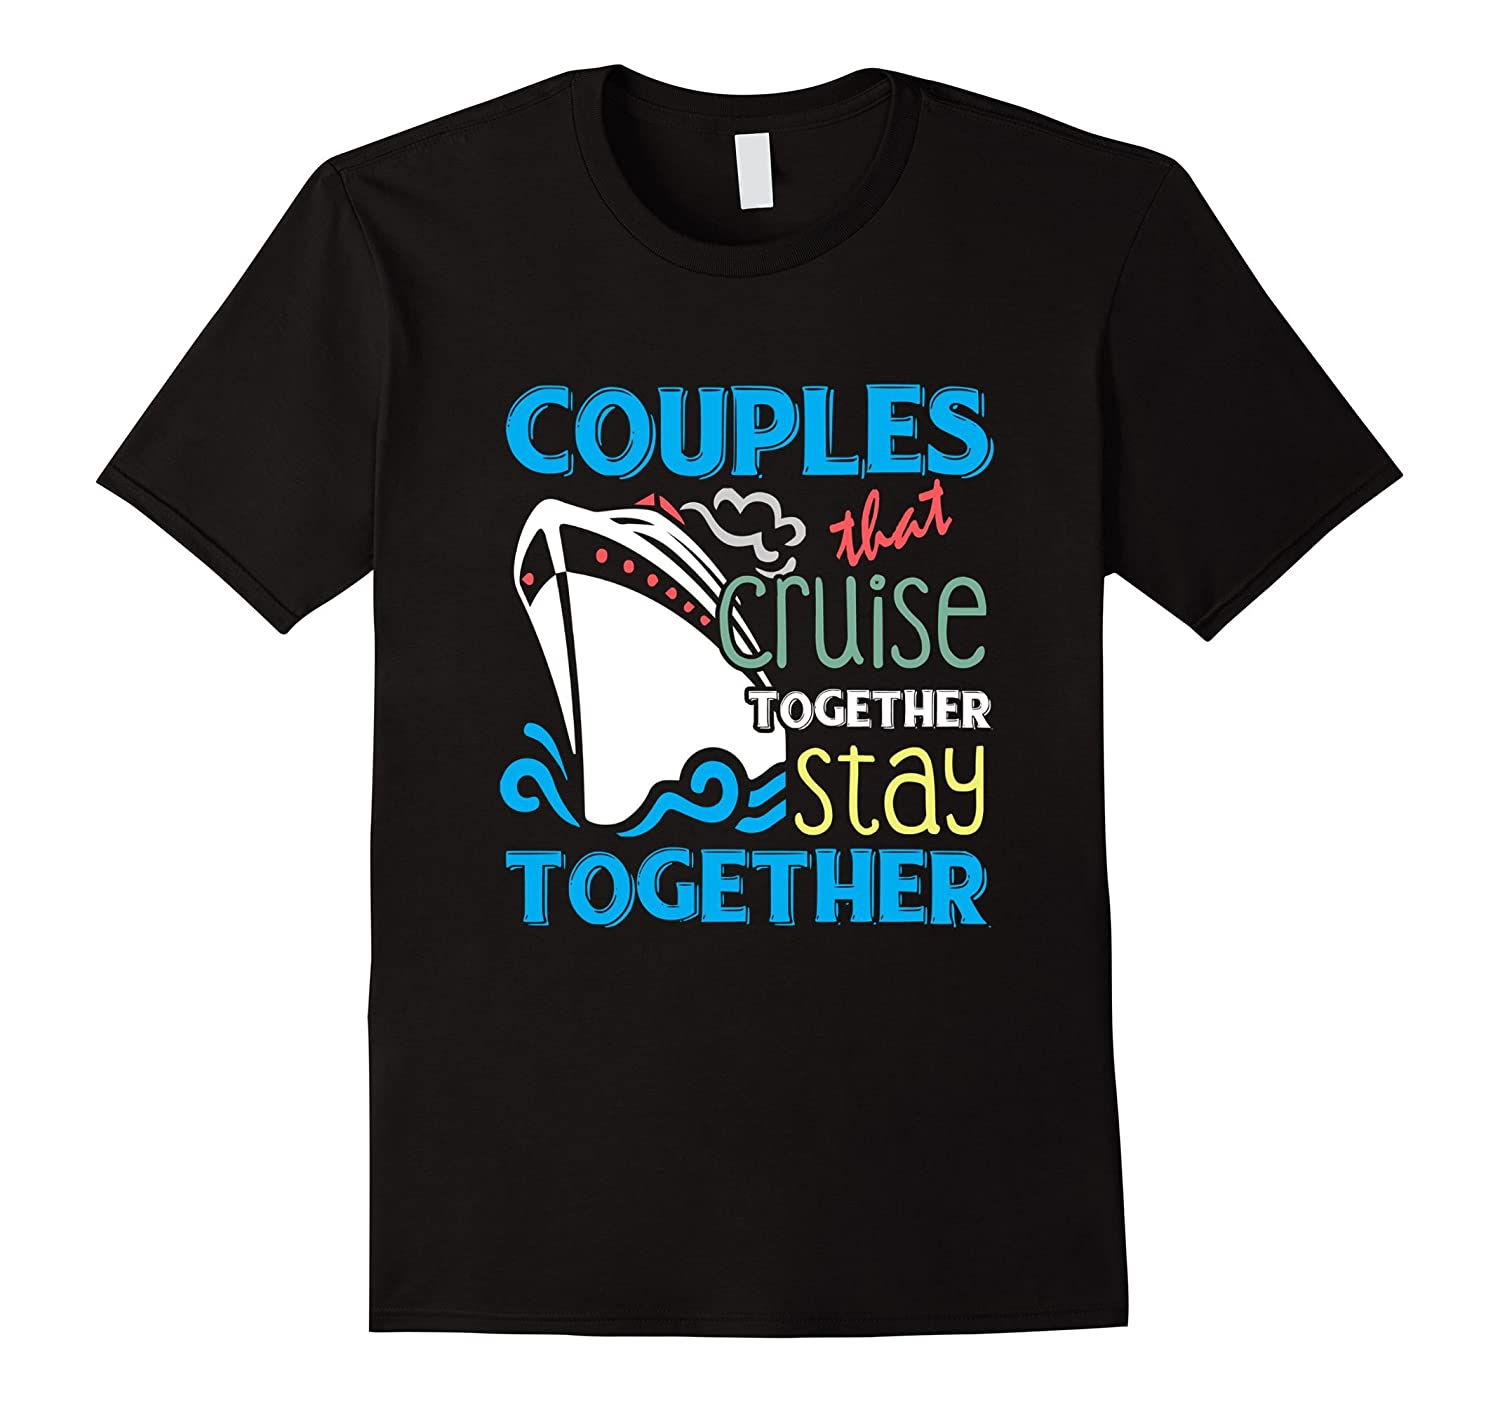 28d5c033 ... Couples That Cruise Together Stay Together Love T-Shirt